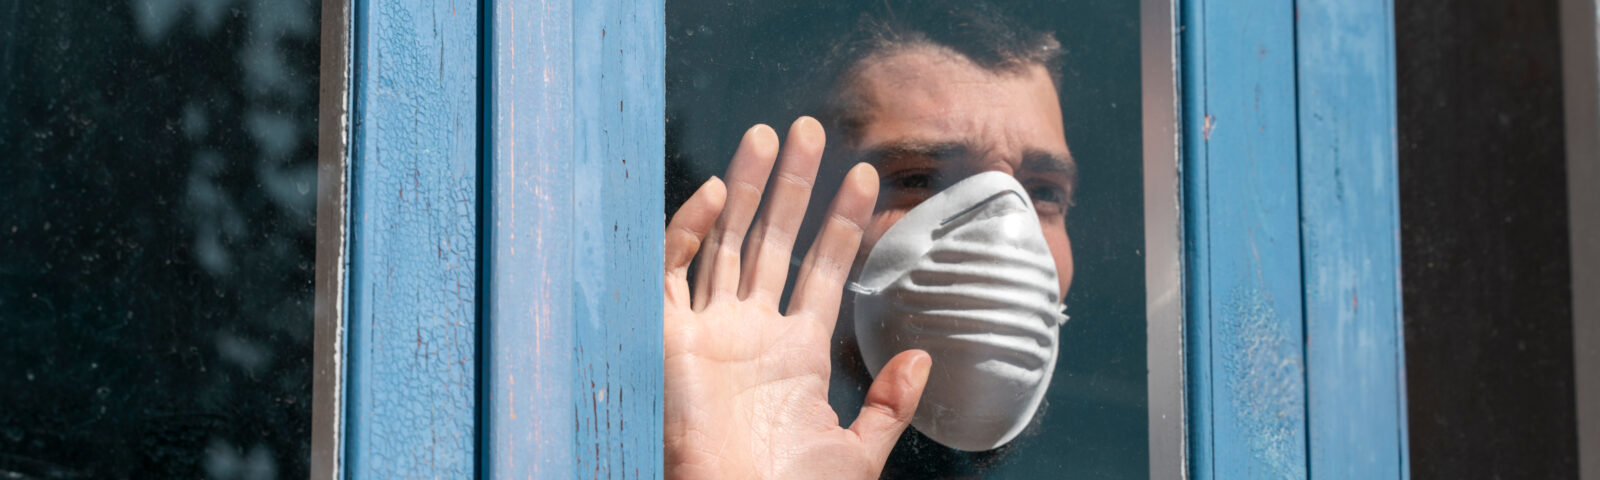 Employer's obligation due to quarantine orders under Covid-19